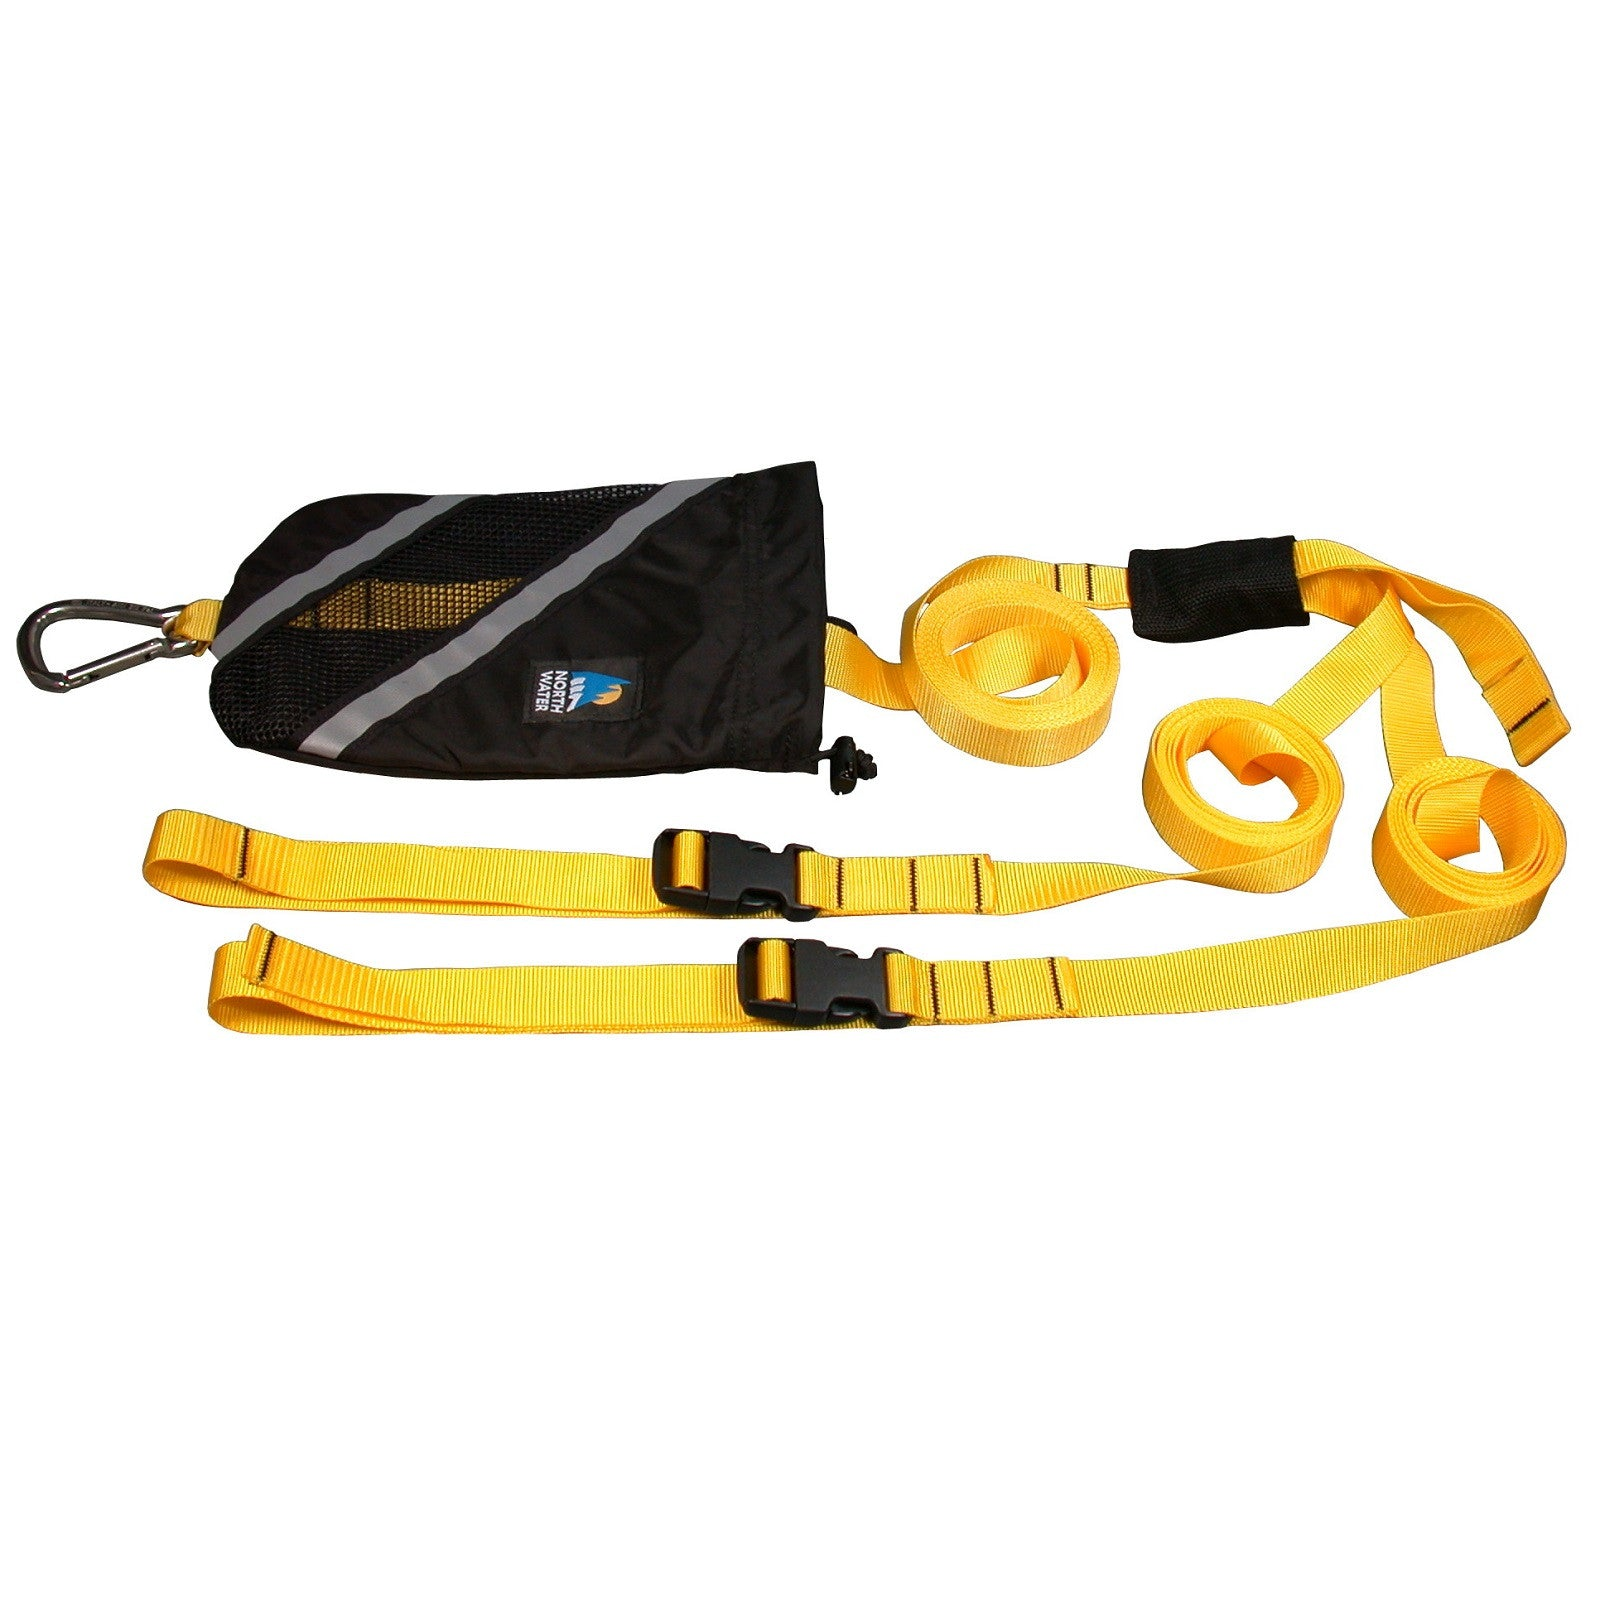 Dragon Boat Tow Harness